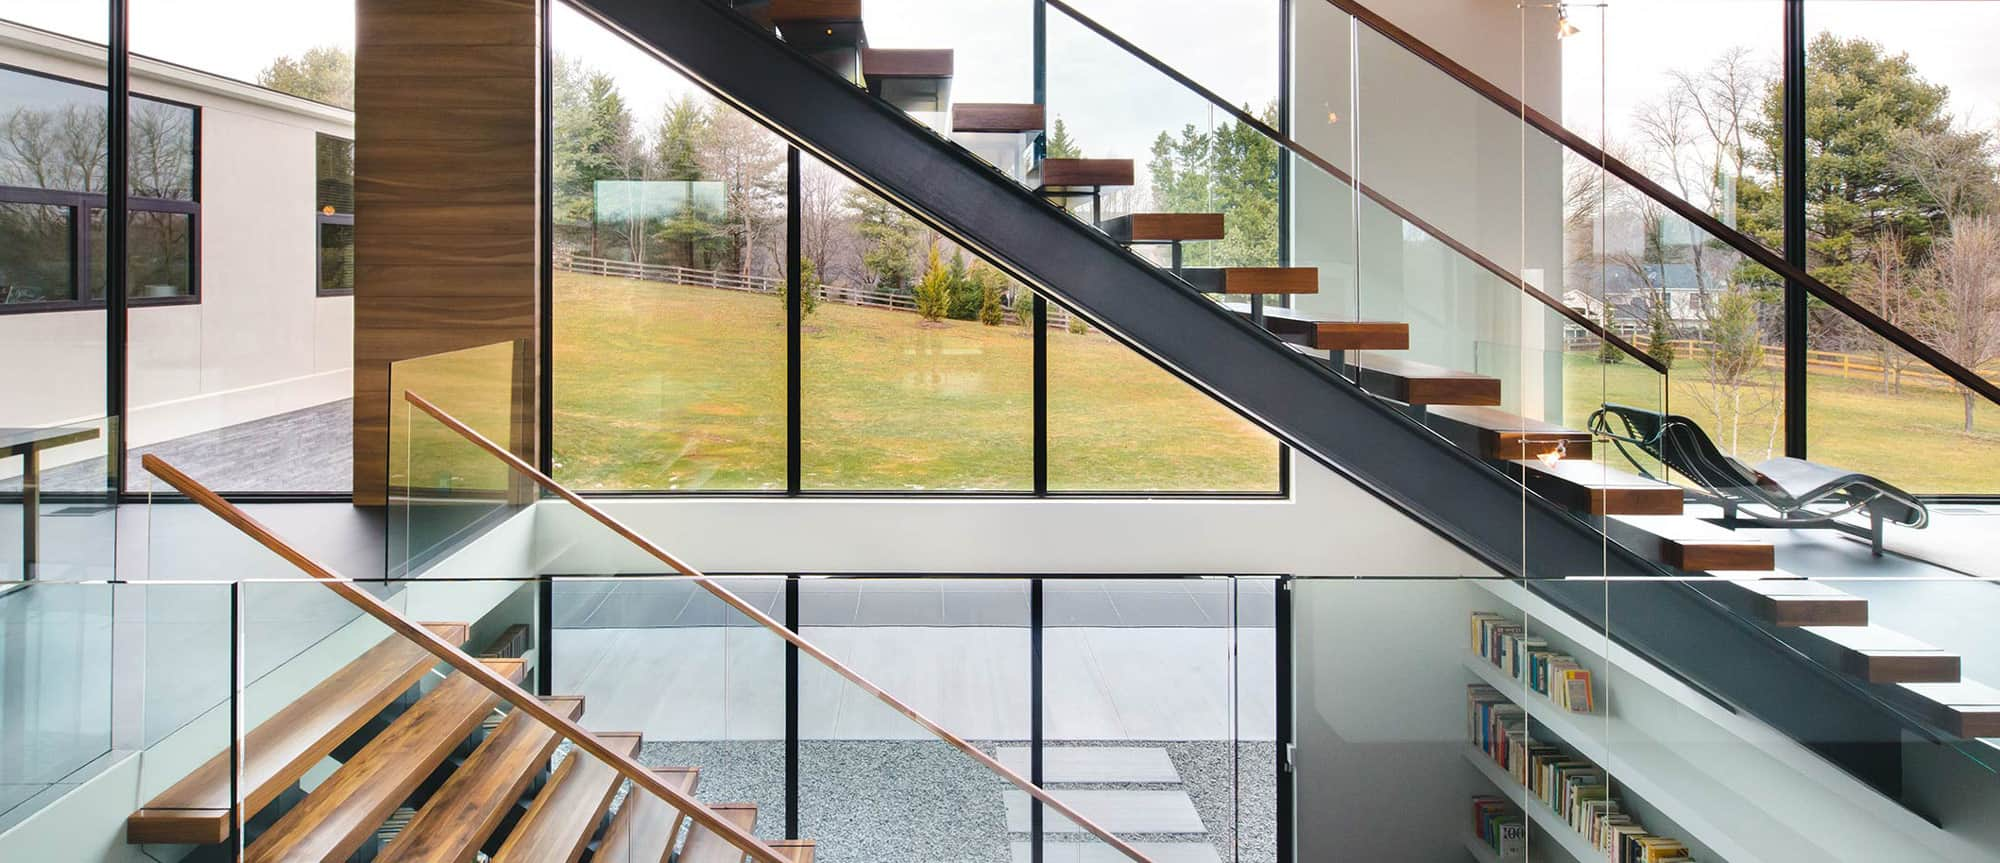 Window wall in an Okanagan home